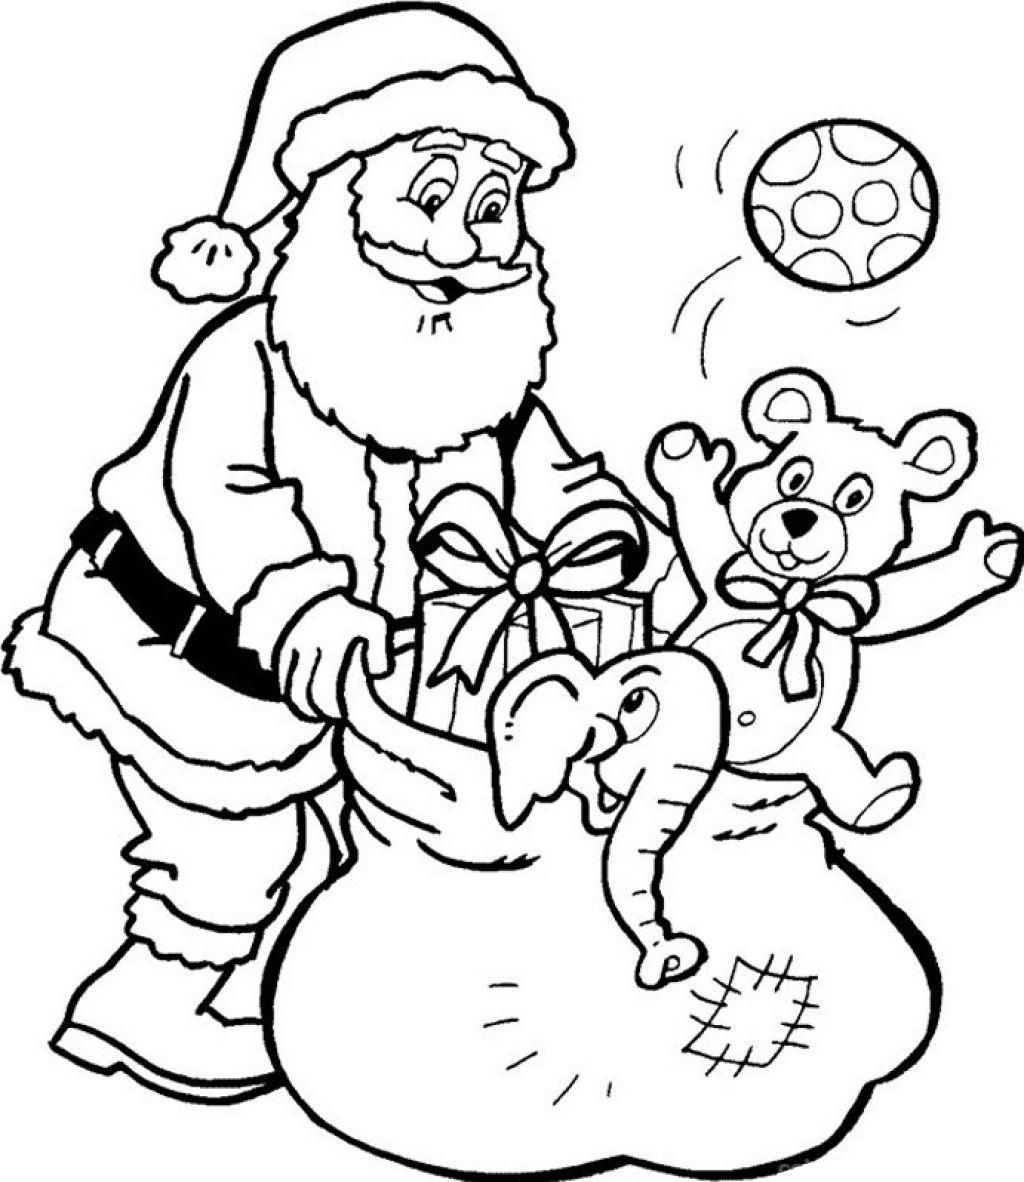 Xmas Coloring Pages Online With Santa Claus And Presents Printable Christmas Some